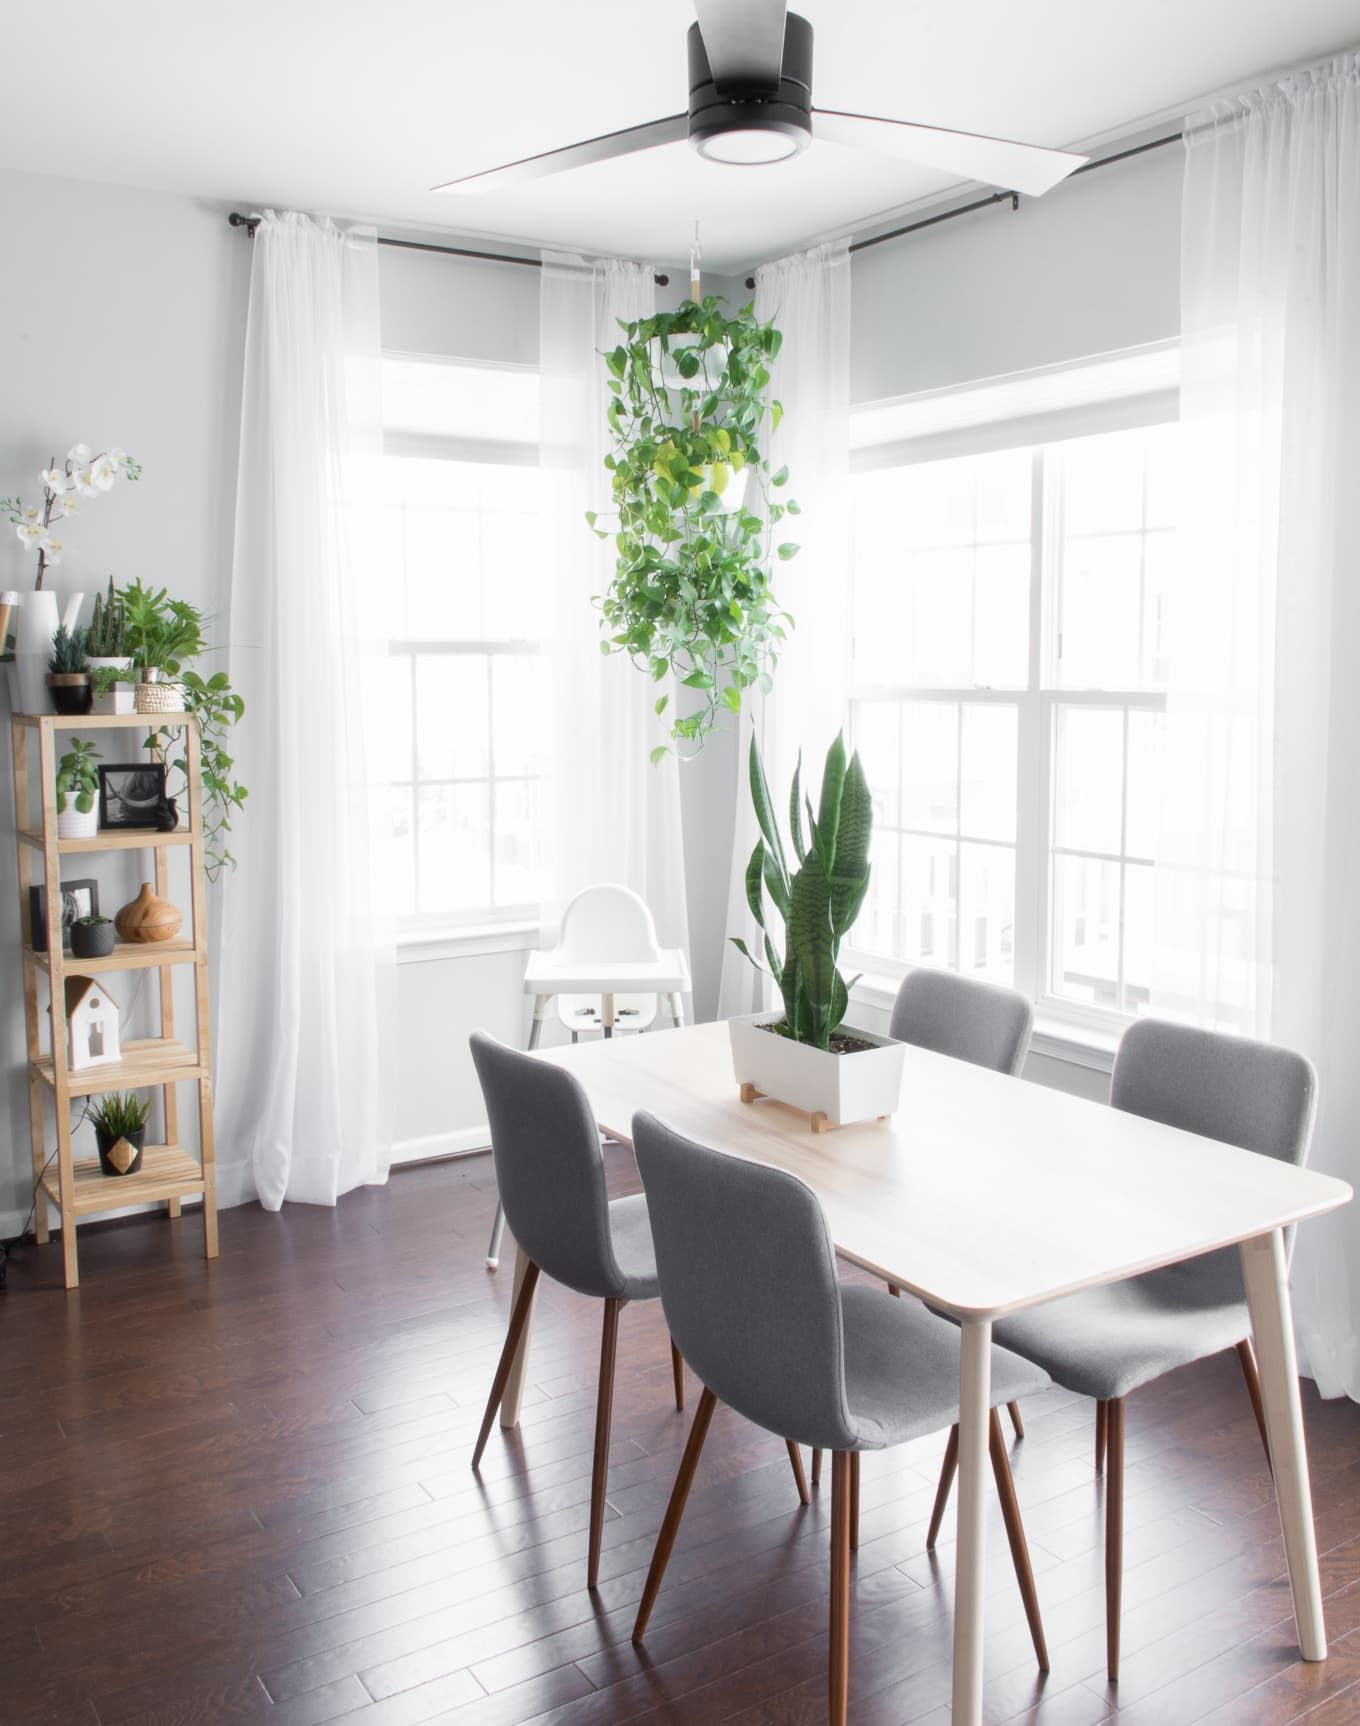 Simple Modern Dining Room Our Minimal Townhouse For A Family Of Three And Two Kitties Looking Decorating Ideas